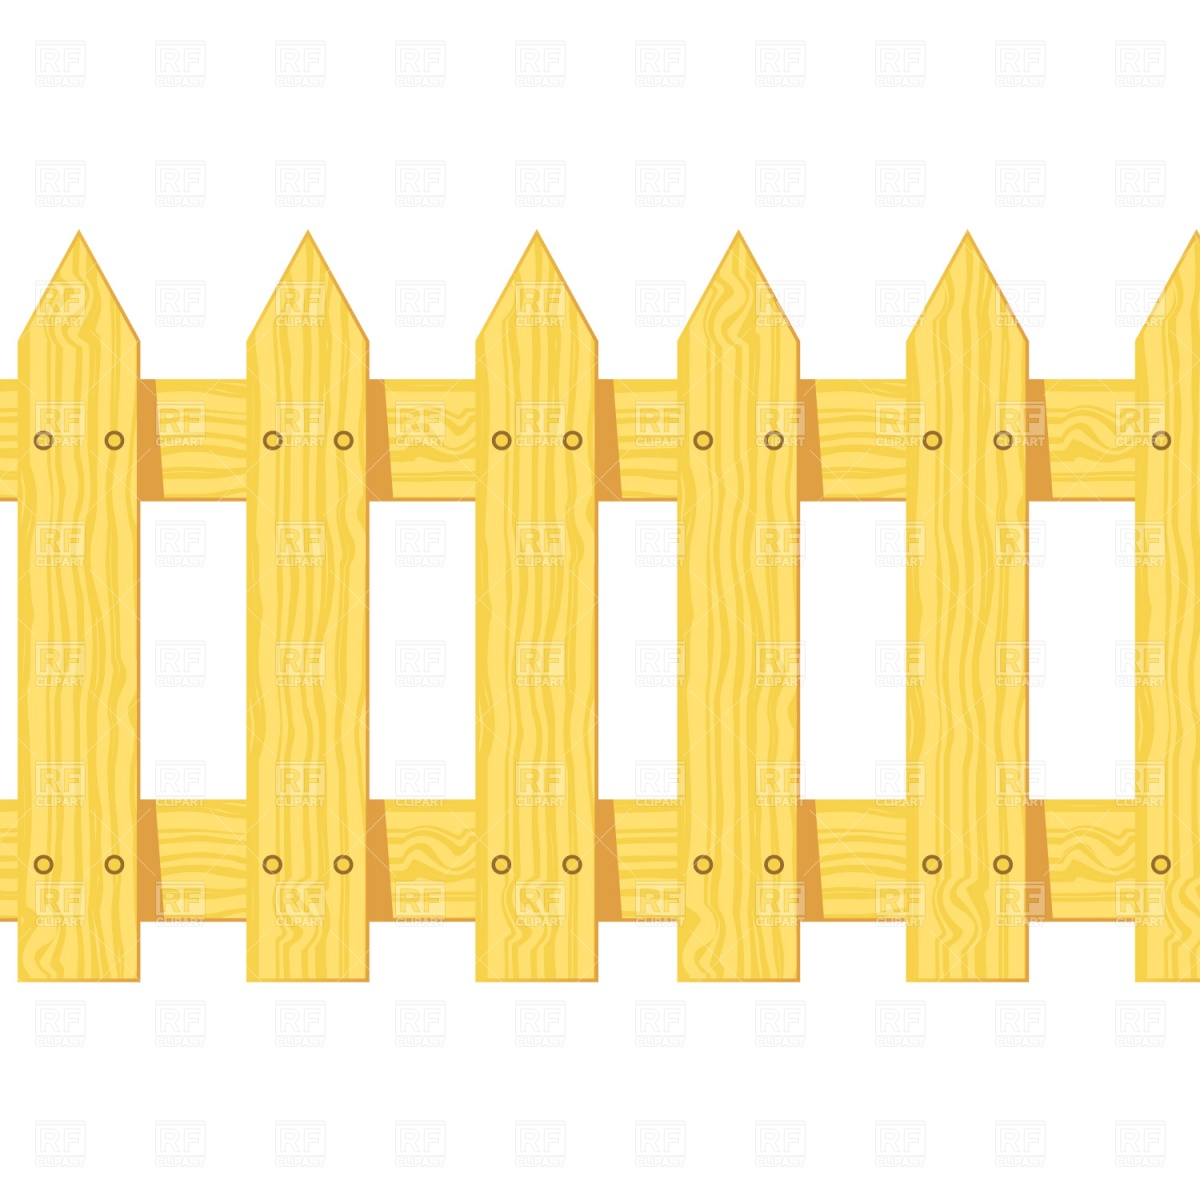 Wooden fence clipart suggest